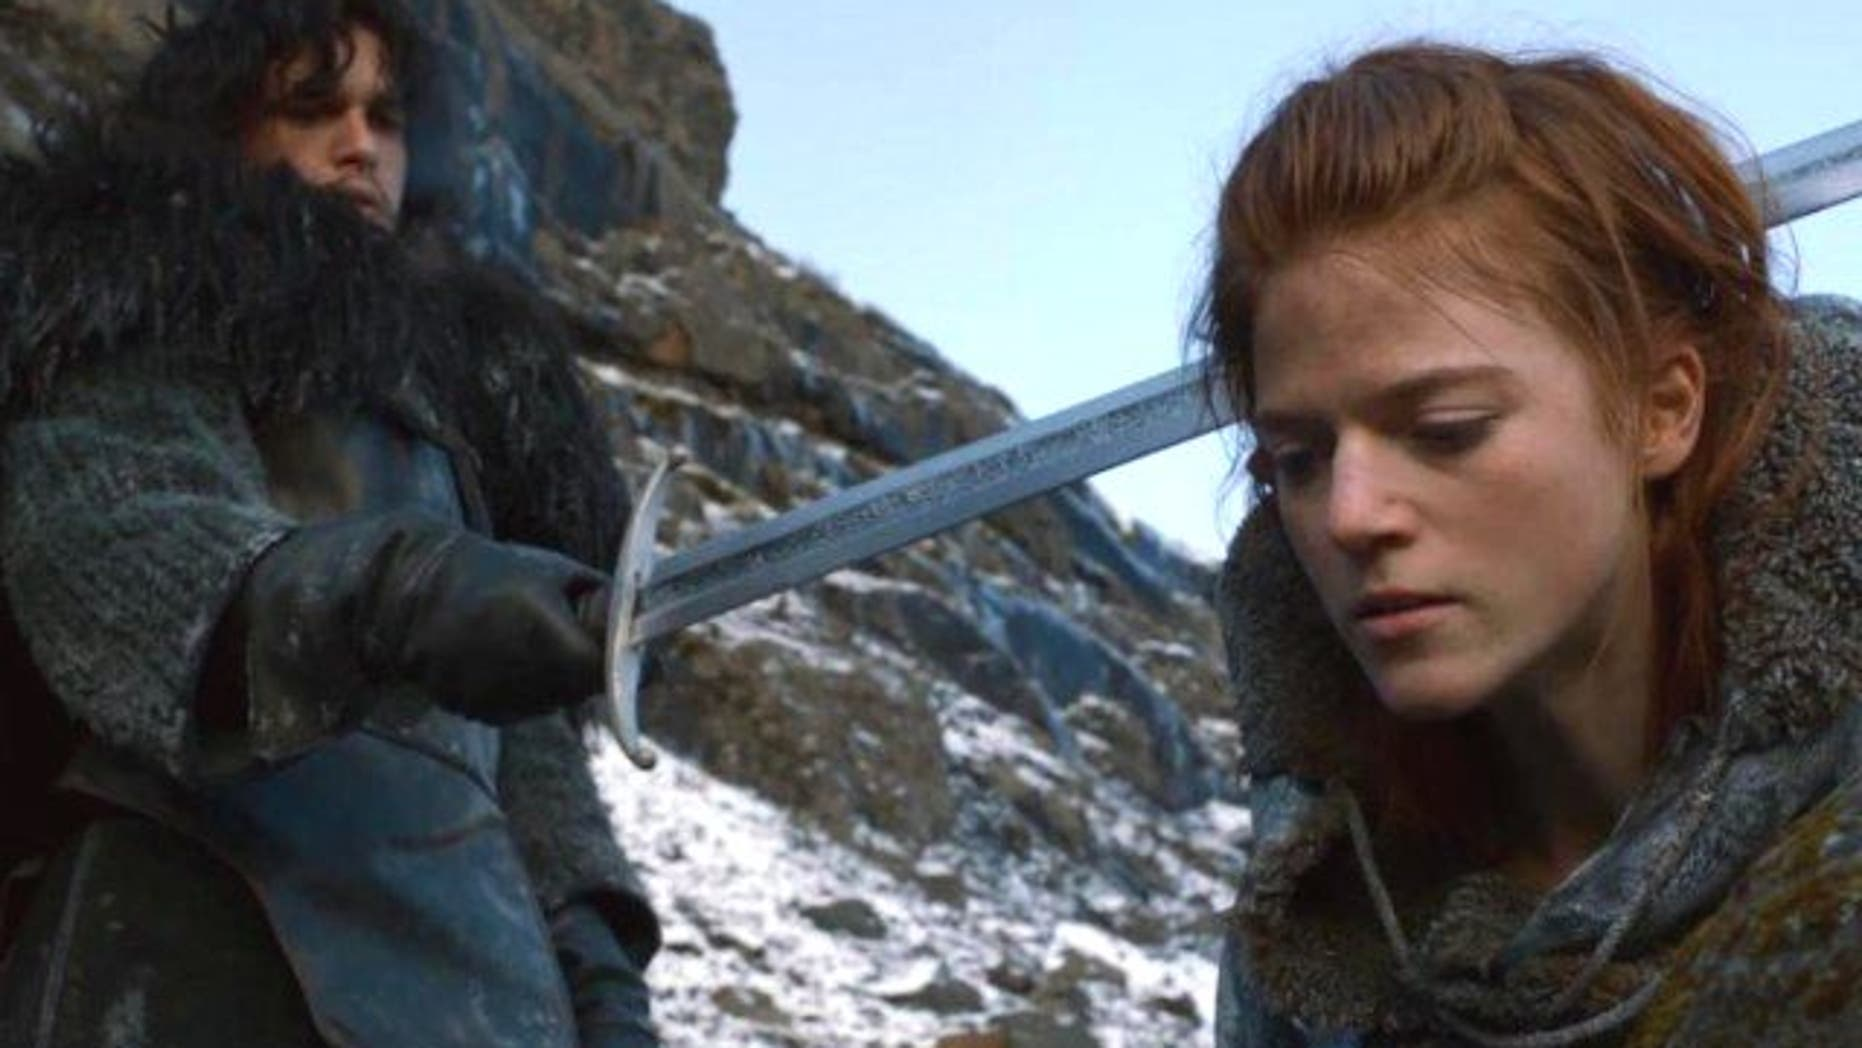 Jon Snow and wilding Ygritte, in less happy times, on 'Game of Thrones.'